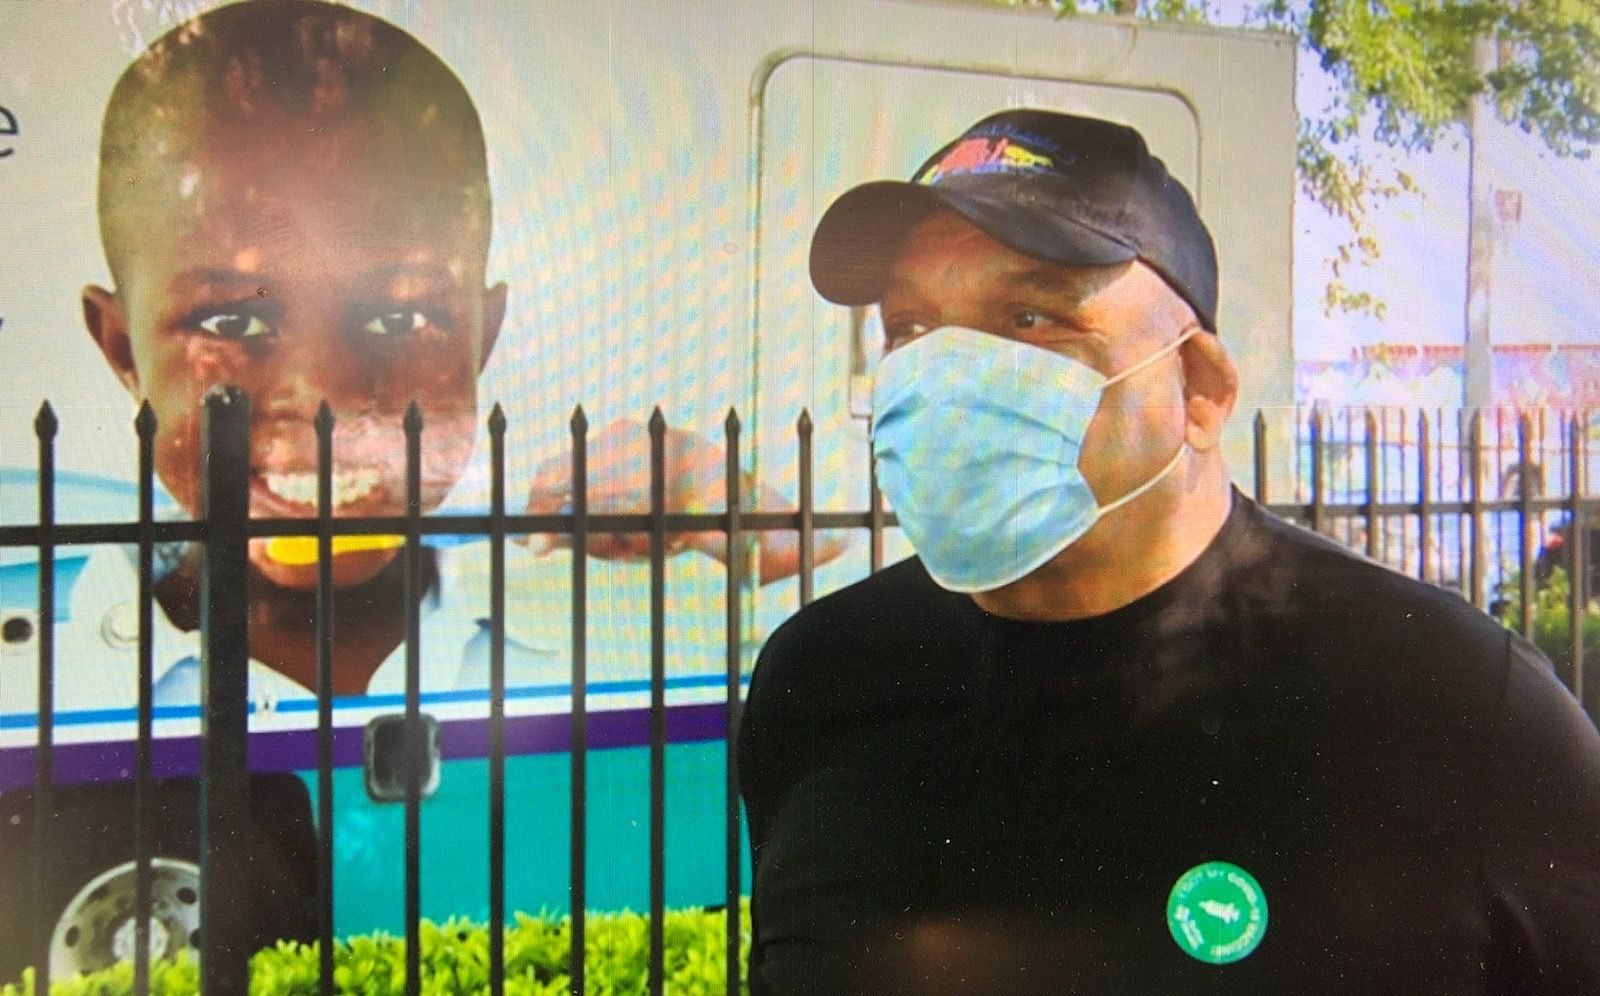 African American male with surgical mask stands alongside black iron fence and mobile healthcare van with African American boy's image